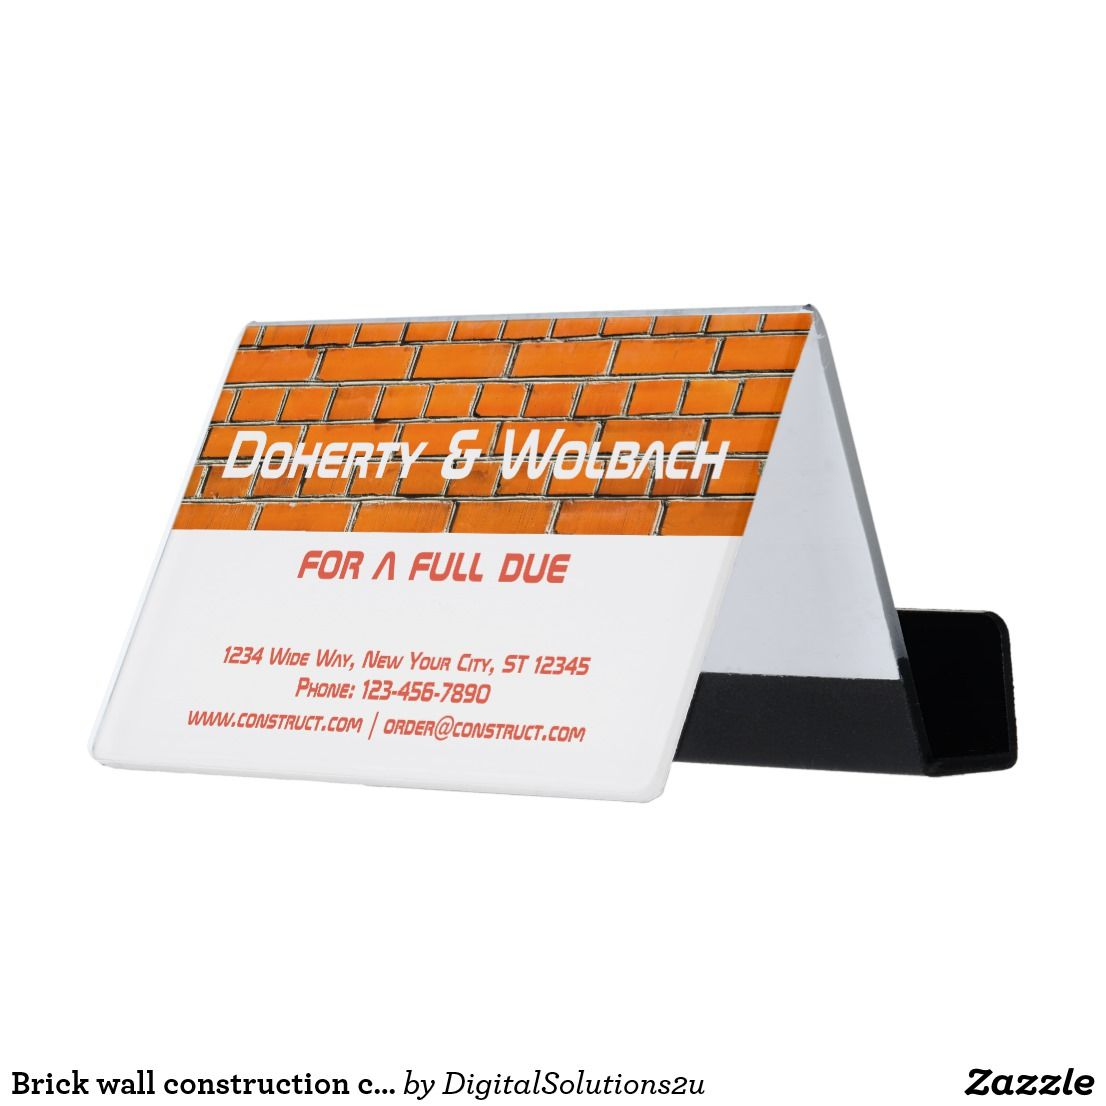 Brick wall construction customizable desk business card holder shop brick wall construction customizable desk business card holder created by personalize it with photos text or purchase as is reheart Choice Image